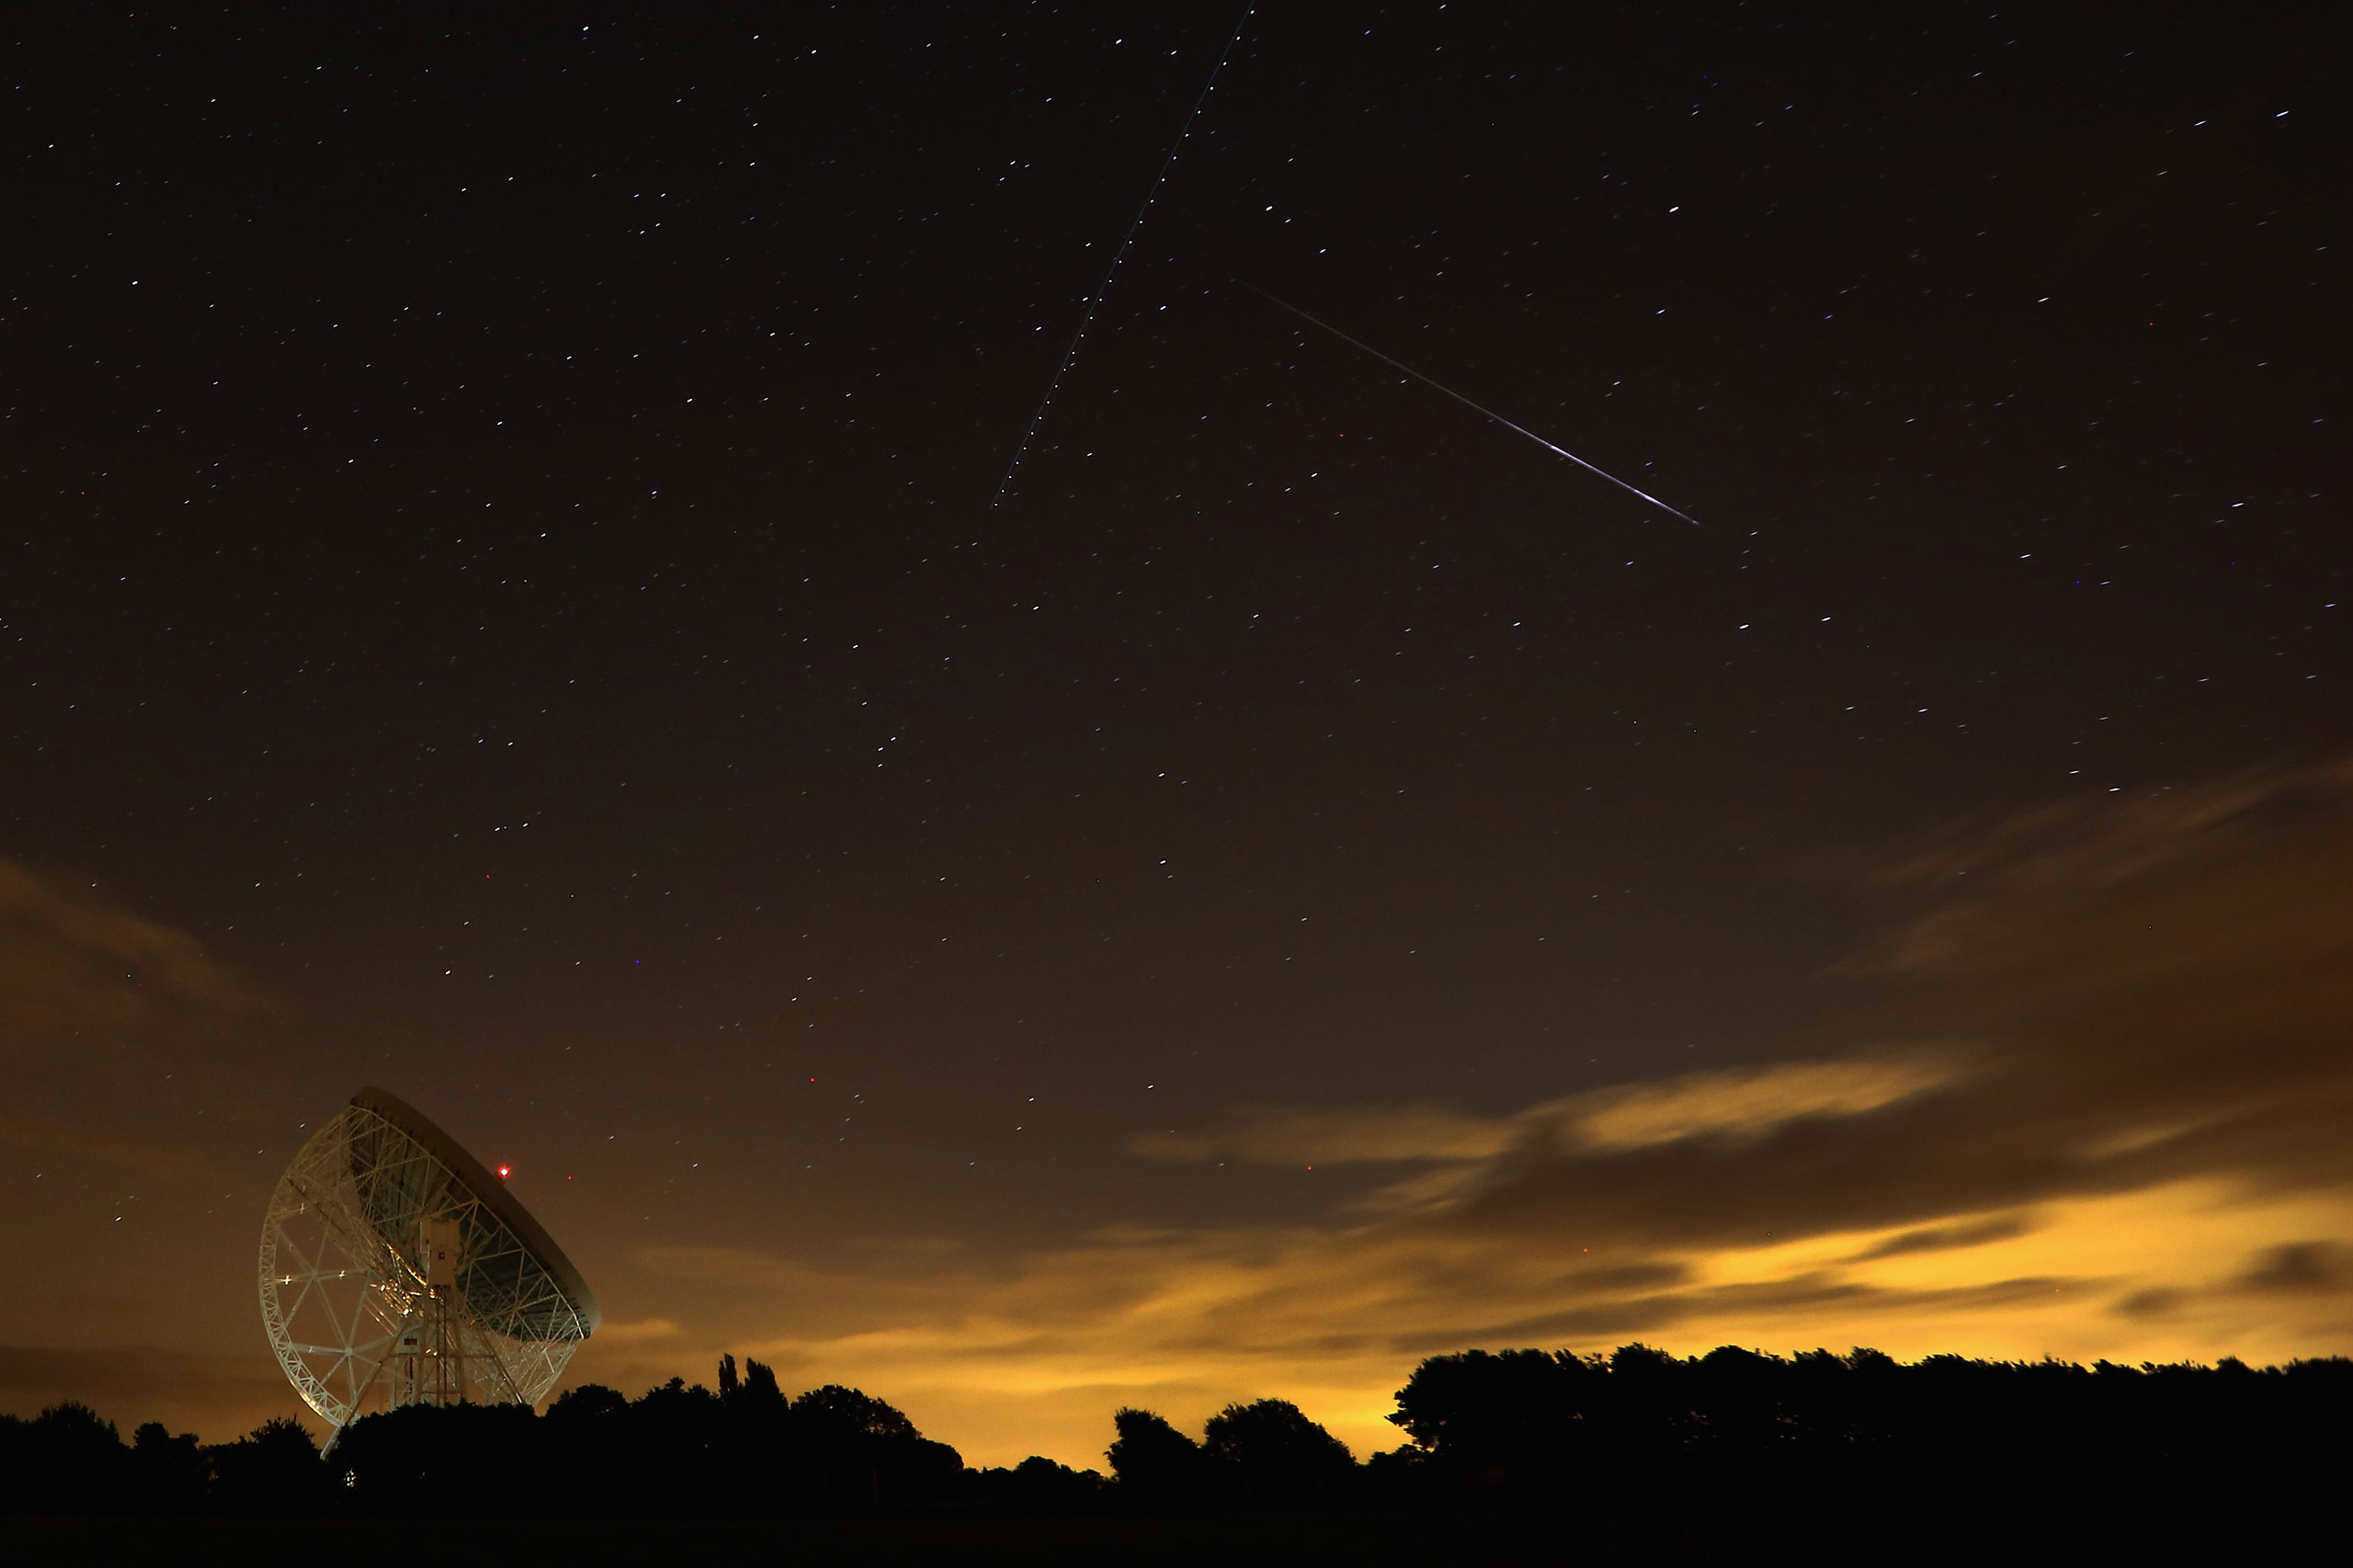 A Perseid meteor streaks across the sky over the Lovell Radio Telescope at Jodrell Bank on Aug. 13, 2013 in Holmes Chapel, England.